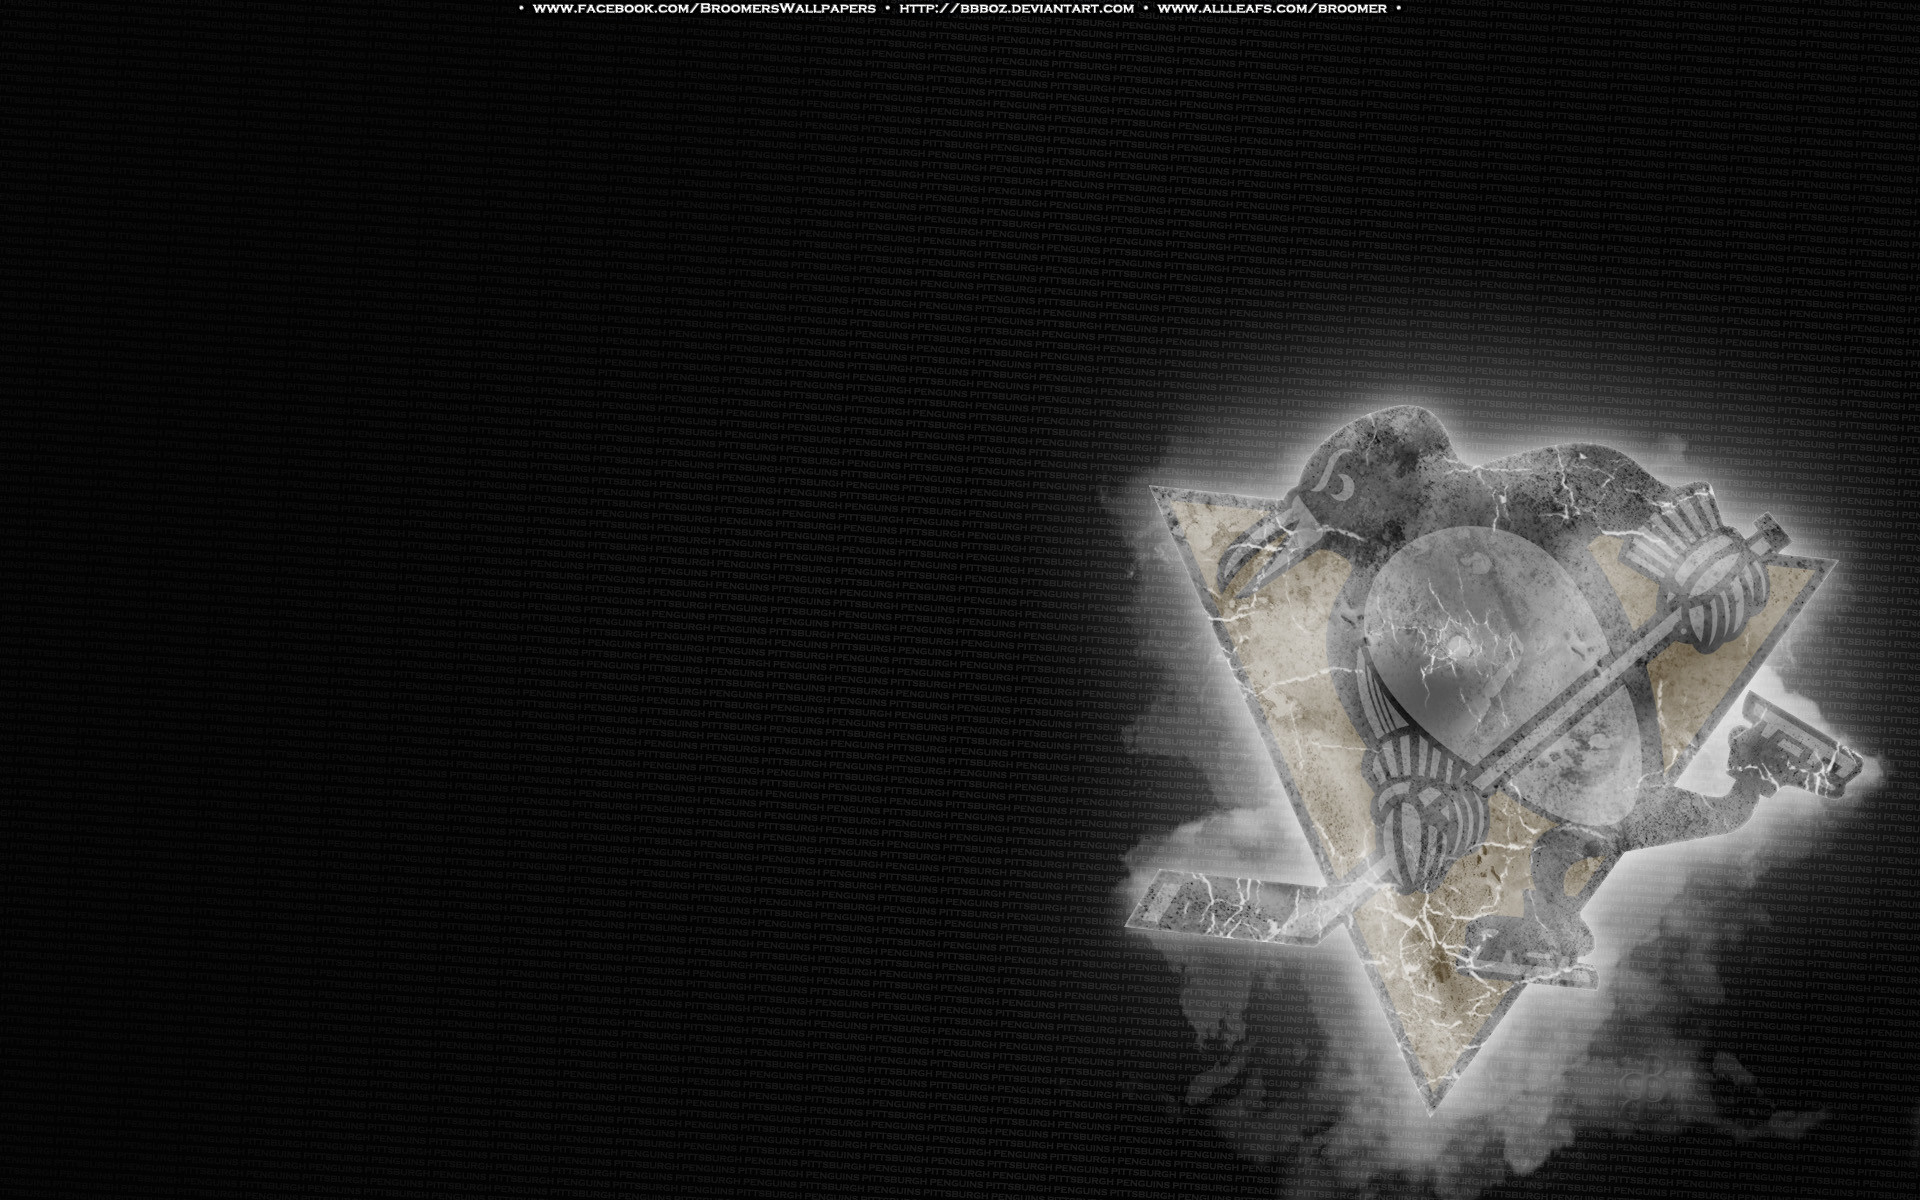 1920x1200 Pittsburgh Penguins Ice by bbboz Pittsburgh Penguins Ice by bbboz